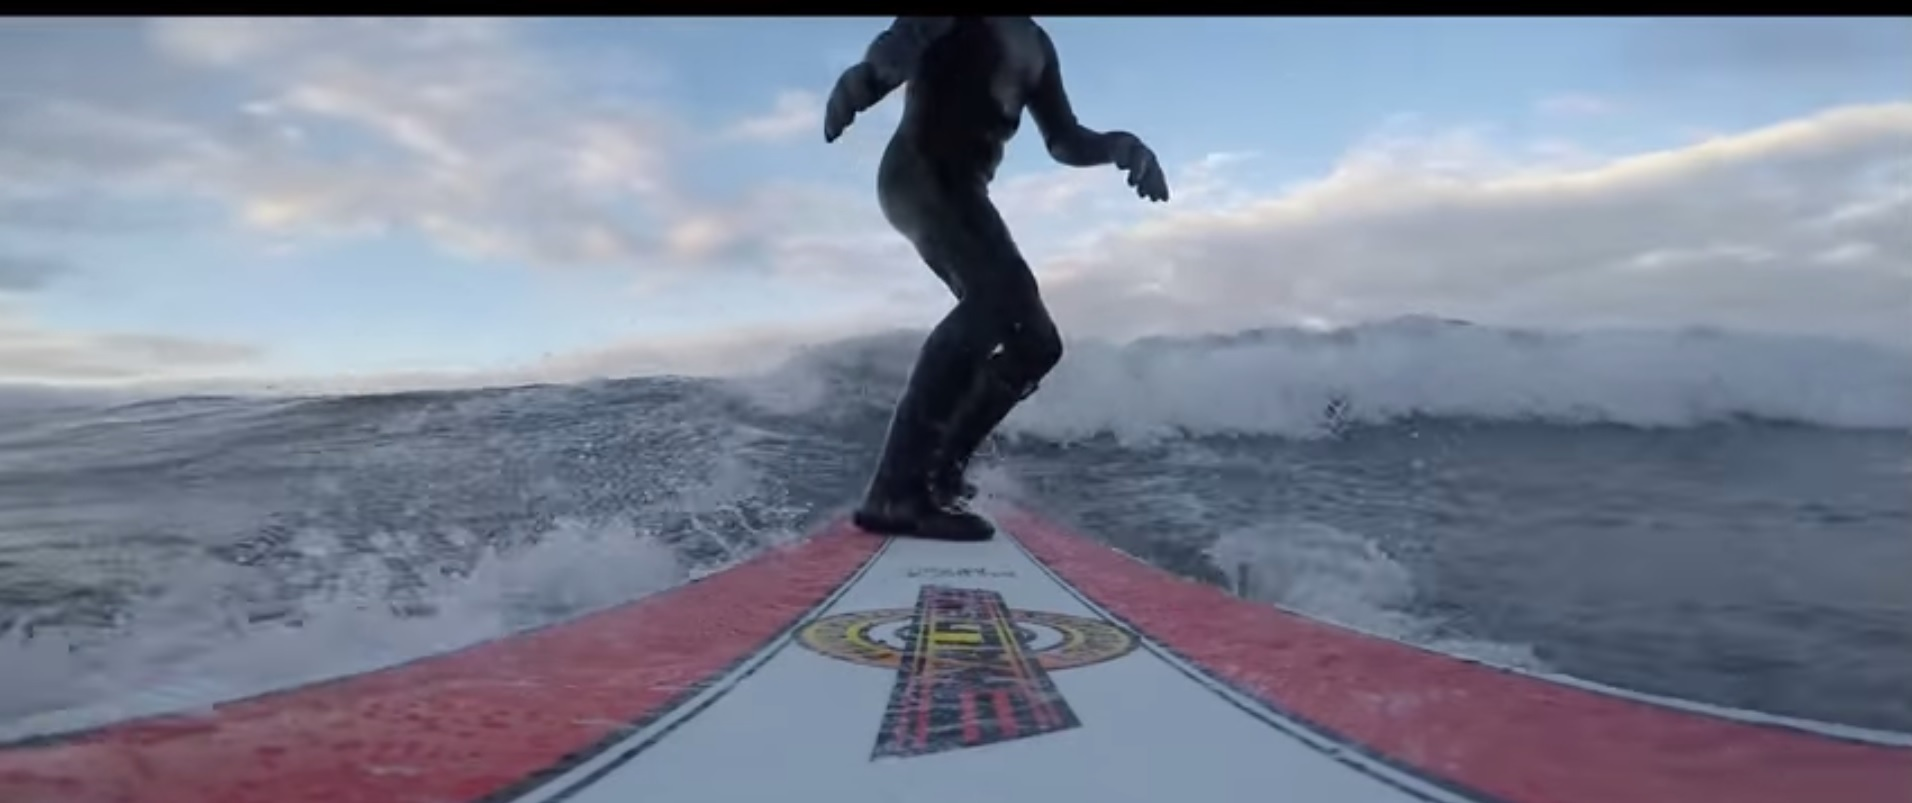 Cold but fun Surfing